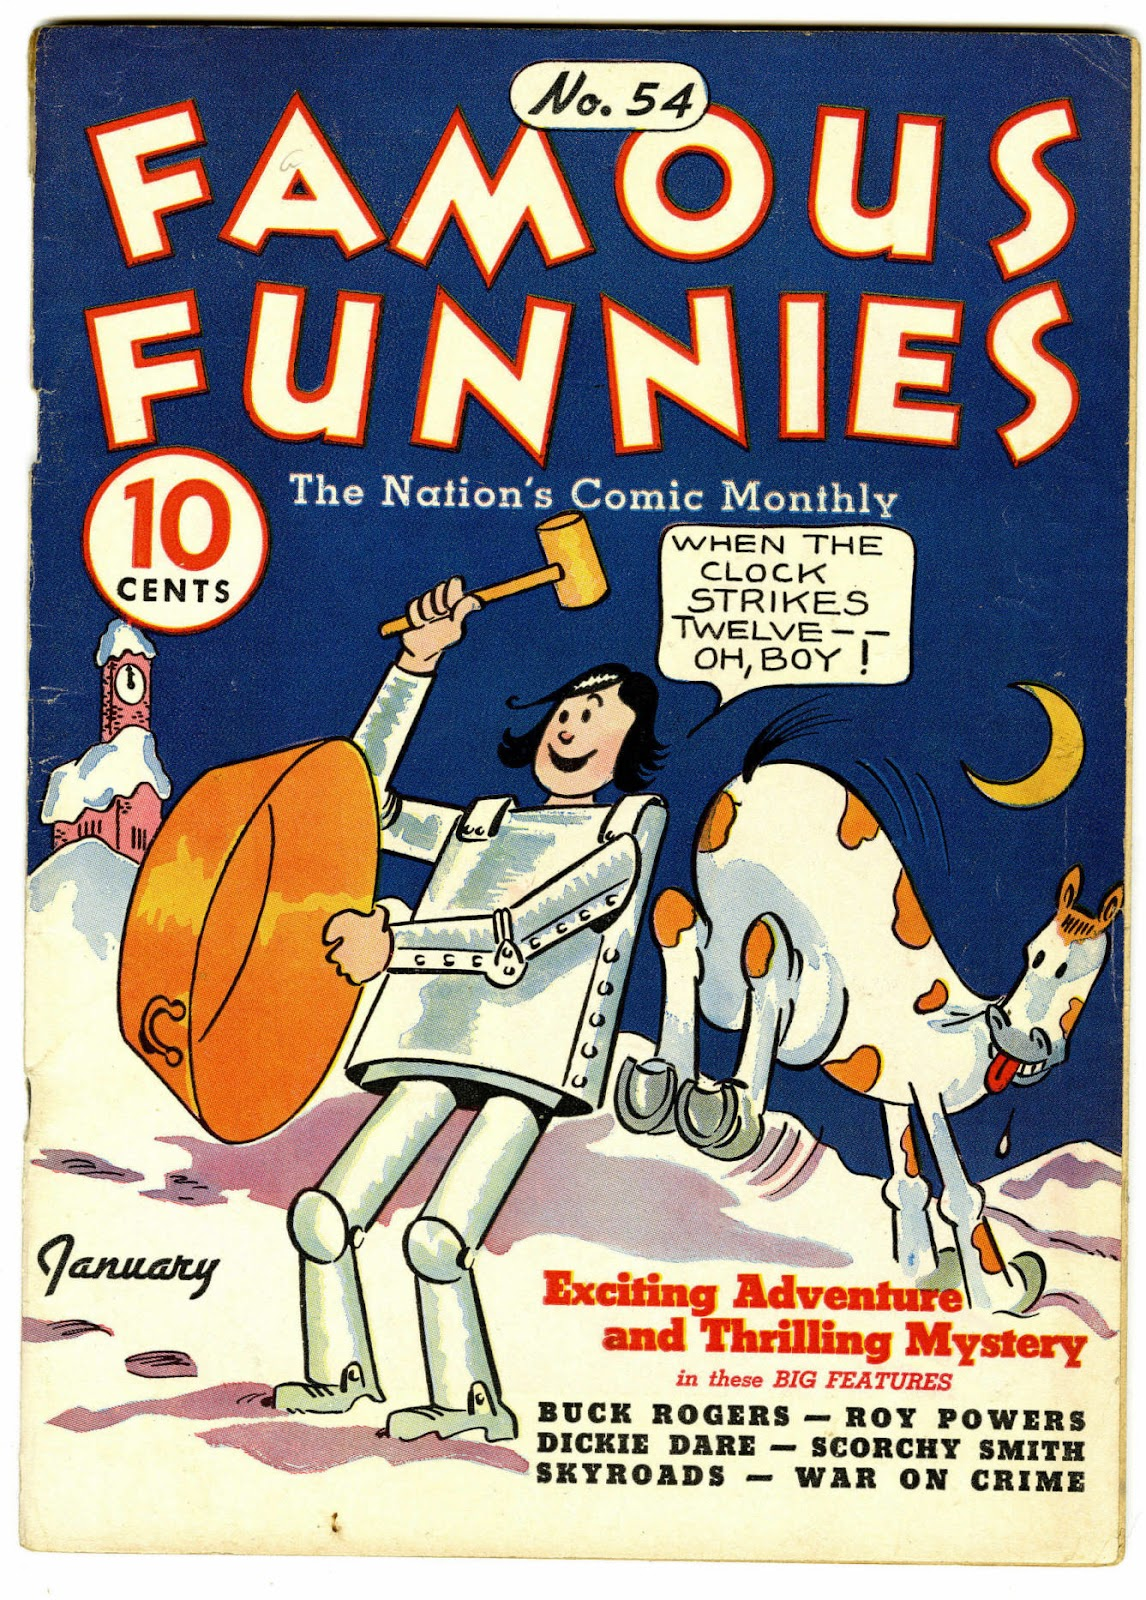 Read online Famous Funnies comic -  Issue #54 - 1